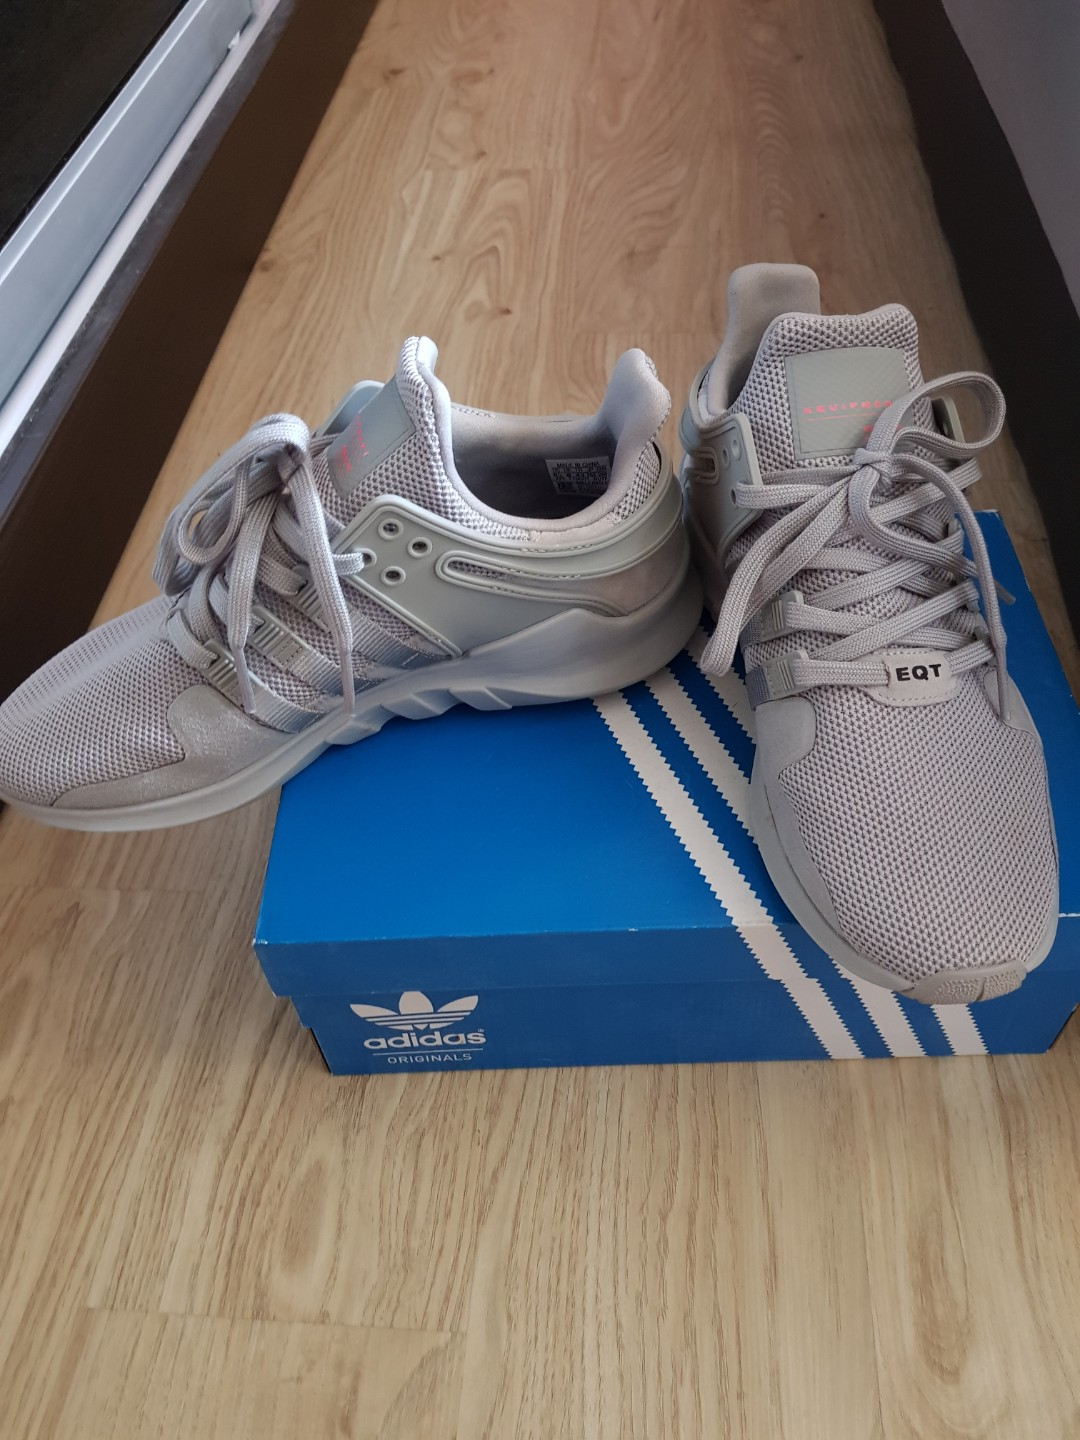 separation shoes 73404 31012 Adidas EQT Support ADV, Mens Fashion, Footwear, Sneakers on